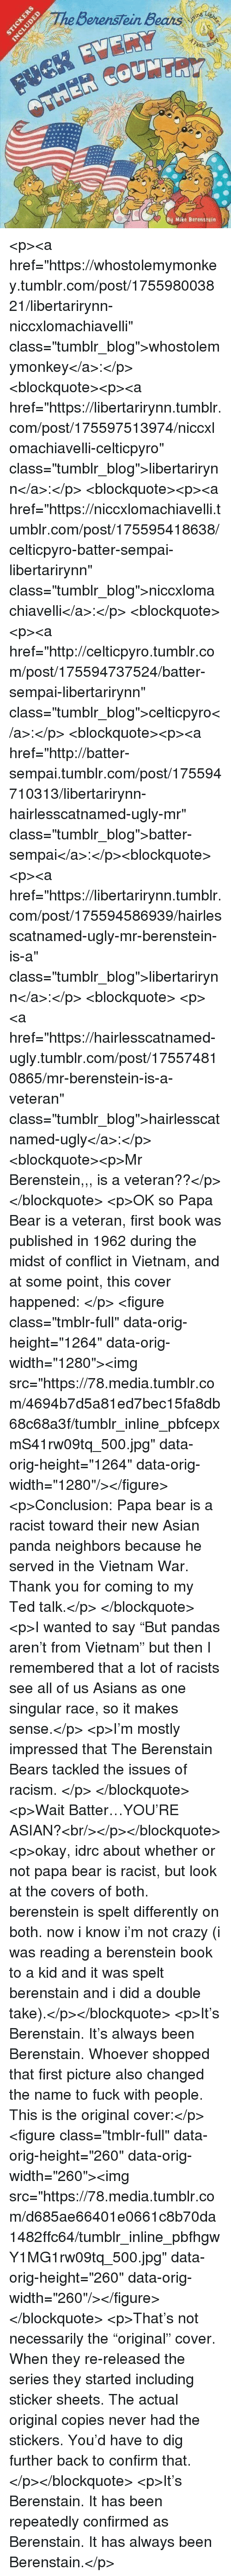 "Not Necessarily: BerensTein Bears  ith  By Mike Berenstein <p><a href=""https://whostolemymonkey.tumblr.com/post/175598003821/libertarirynn-niccxlomachiavelli"" class=""tumblr_blog"">whostolemymonkey</a>:</p>  <blockquote><p><a href=""https://libertarirynn.tumblr.com/post/175597513974/niccxlomachiavelli-celticpyro"" class=""tumblr_blog"">libertarirynn</a>:</p>  <blockquote><p><a href=""https://niccxlomachiavelli.tumblr.com/post/175595418638/celticpyro-batter-sempai-libertarirynn"" class=""tumblr_blog"">niccxlomachiavelli</a>:</p>  <blockquote><p><a href=""http://celticpyro.tumblr.com/post/175594737524/batter-sempai-libertarirynn"" class=""tumblr_blog"">celticpyro</a>:</p>  <blockquote><p><a href=""http://batter-sempai.tumblr.com/post/175594710313/libertarirynn-hairlesscatnamed-ugly-mr"" class=""tumblr_blog"">batter-sempai</a>:</p><blockquote> <p><a href=""https://libertarirynn.tumblr.com/post/175594586939/hairlesscatnamed-ugly-mr-berenstein-is-a"" class=""tumblr_blog"">libertarirynn</a>:</p>  <blockquote> <p><a href=""https://hairlesscatnamed-ugly.tumblr.com/post/175574810865/mr-berenstein-is-a-veteran"" class=""tumblr_blog"">hairlesscatnamed-ugly</a>:</p>  <blockquote><p>Mr Berenstein,,, is a veteran??</p></blockquote>  <p>OK so Papa Bear is a veteran, first book was published in 1962 during the midst of conflict in Vietnam, and at some point, this cover happened: </p> <figure class=""tmblr-full"" data-orig-height=""1264"" data-orig-width=""1280""><img src=""https://78.media.tumblr.com/4694b7d5a81ed7bec15fa8db68c68a3f/tumblr_inline_pbfcepxmS41rw09tq_500.jpg"" data-orig-height=""1264"" data-orig-width=""1280""/></figure><p>Conclusion: Papa bear is a racist toward their new Asian panda neighbors because he served in the Vietnam War. Thank you for coming to my Ted talk.</p> </blockquote>  <p>I wanted to say ""But pandas aren't from Vietnam"" but then I remembered that a lot of racists see all of us Asians as one singular race, so it makes sense.</p> <p>I'm mostly impressed that The Berenstain Bears tackled the issues of racism. </p> </blockquote> <p>Wait Batter…YOU'RE ASIAN?<br/></p></blockquote>  <p>okay, idrc about whether or not papa bear is racist, but look at the covers of both. berenstein is spelt differently on both. now i know i'm not crazy (i was reading a berenstein book to a kid and it was spelt berenstain and i did a double take).</p></blockquote>  <p>It's Berenstain. It's always been Berenstain. Whoever shopped that first picture also changed the name to fuck with people. This is the original cover:</p><figure class=""tmblr-full"" data-orig-height=""260"" data-orig-width=""260""><img src=""https://78.media.tumblr.com/d685ae66401e0661c8b70da1482ffc64/tumblr_inline_pbfhgwY1MG1rw09tq_500.jpg"" data-orig-height=""260"" data-orig-width=""260""/></figure></blockquote>  <p>That's not necessarily the ""original"" cover.  When they re-released the series they started including sticker sheets.  The actual original copies never had the stickers.  You'd have to dig further back to confirm that. </p></blockquote>  <p>It's Berenstain. It has been repeatedly confirmed as Berenstain. It has always been Berenstain.</p>"